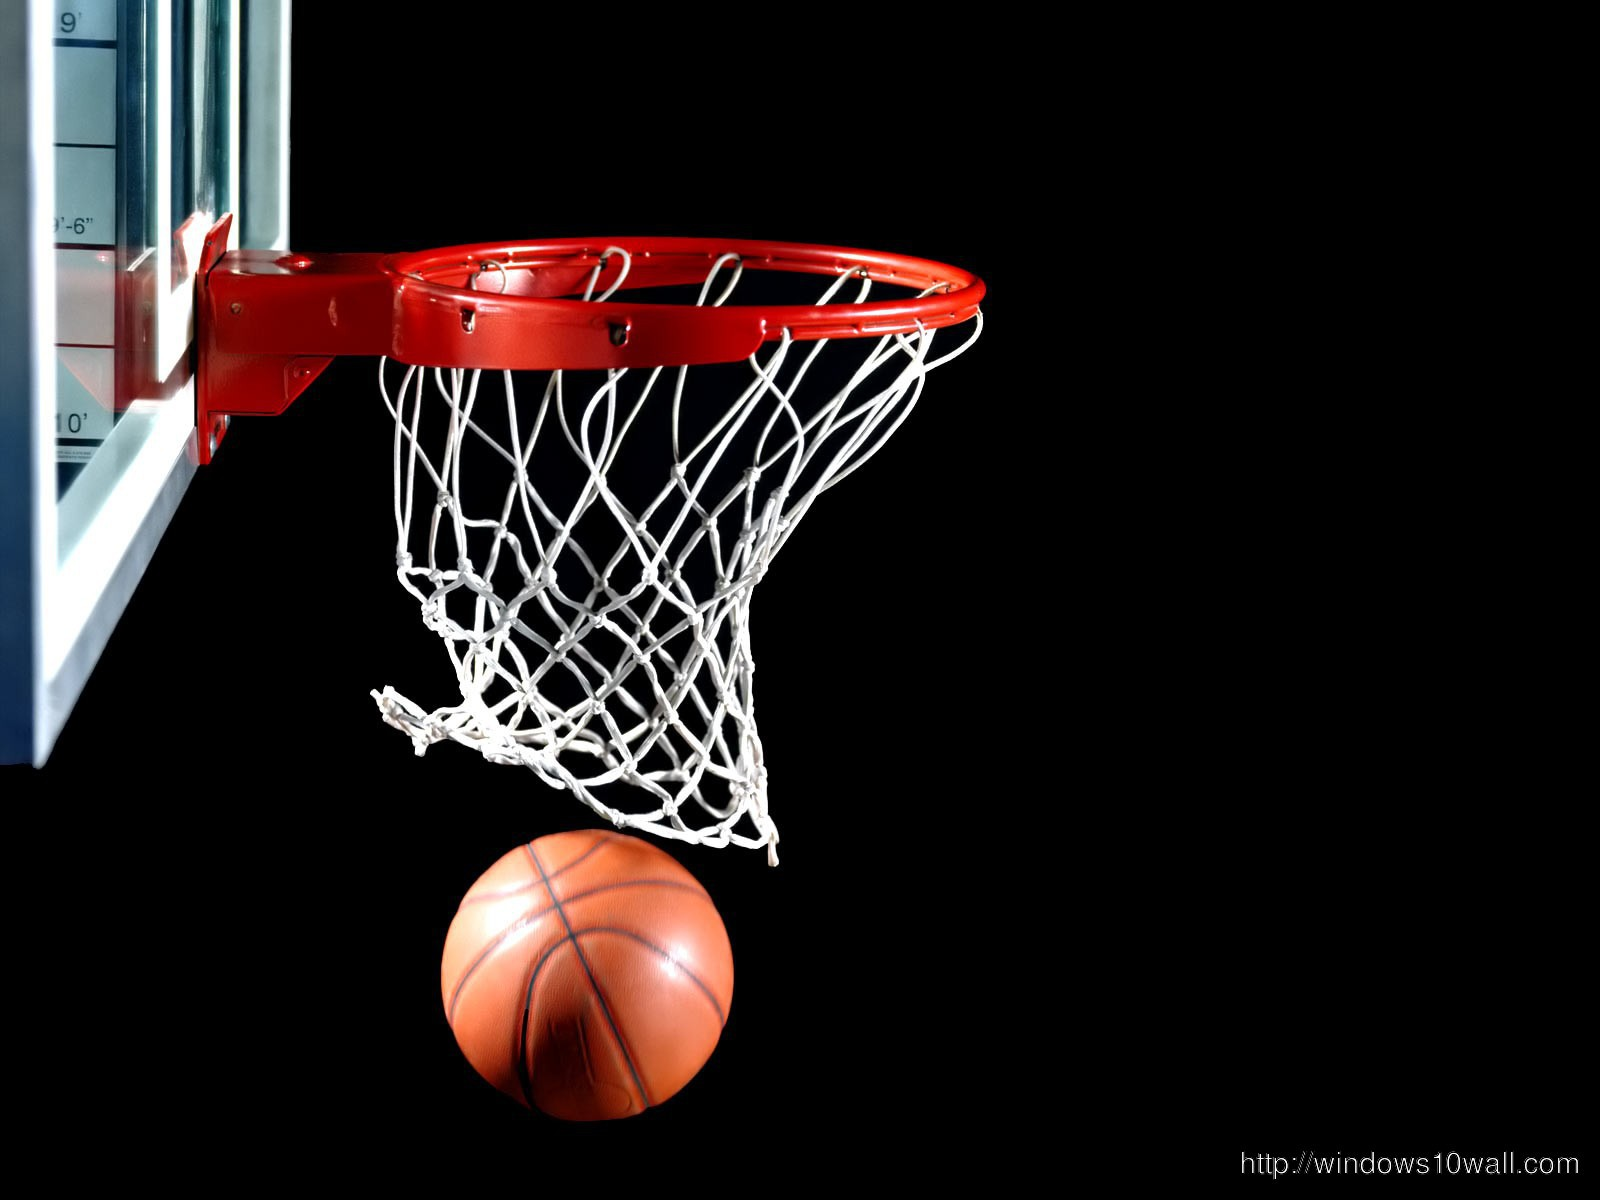 Awesome Basketball Hd Background Wallpaper Windows 10 Wallpapers